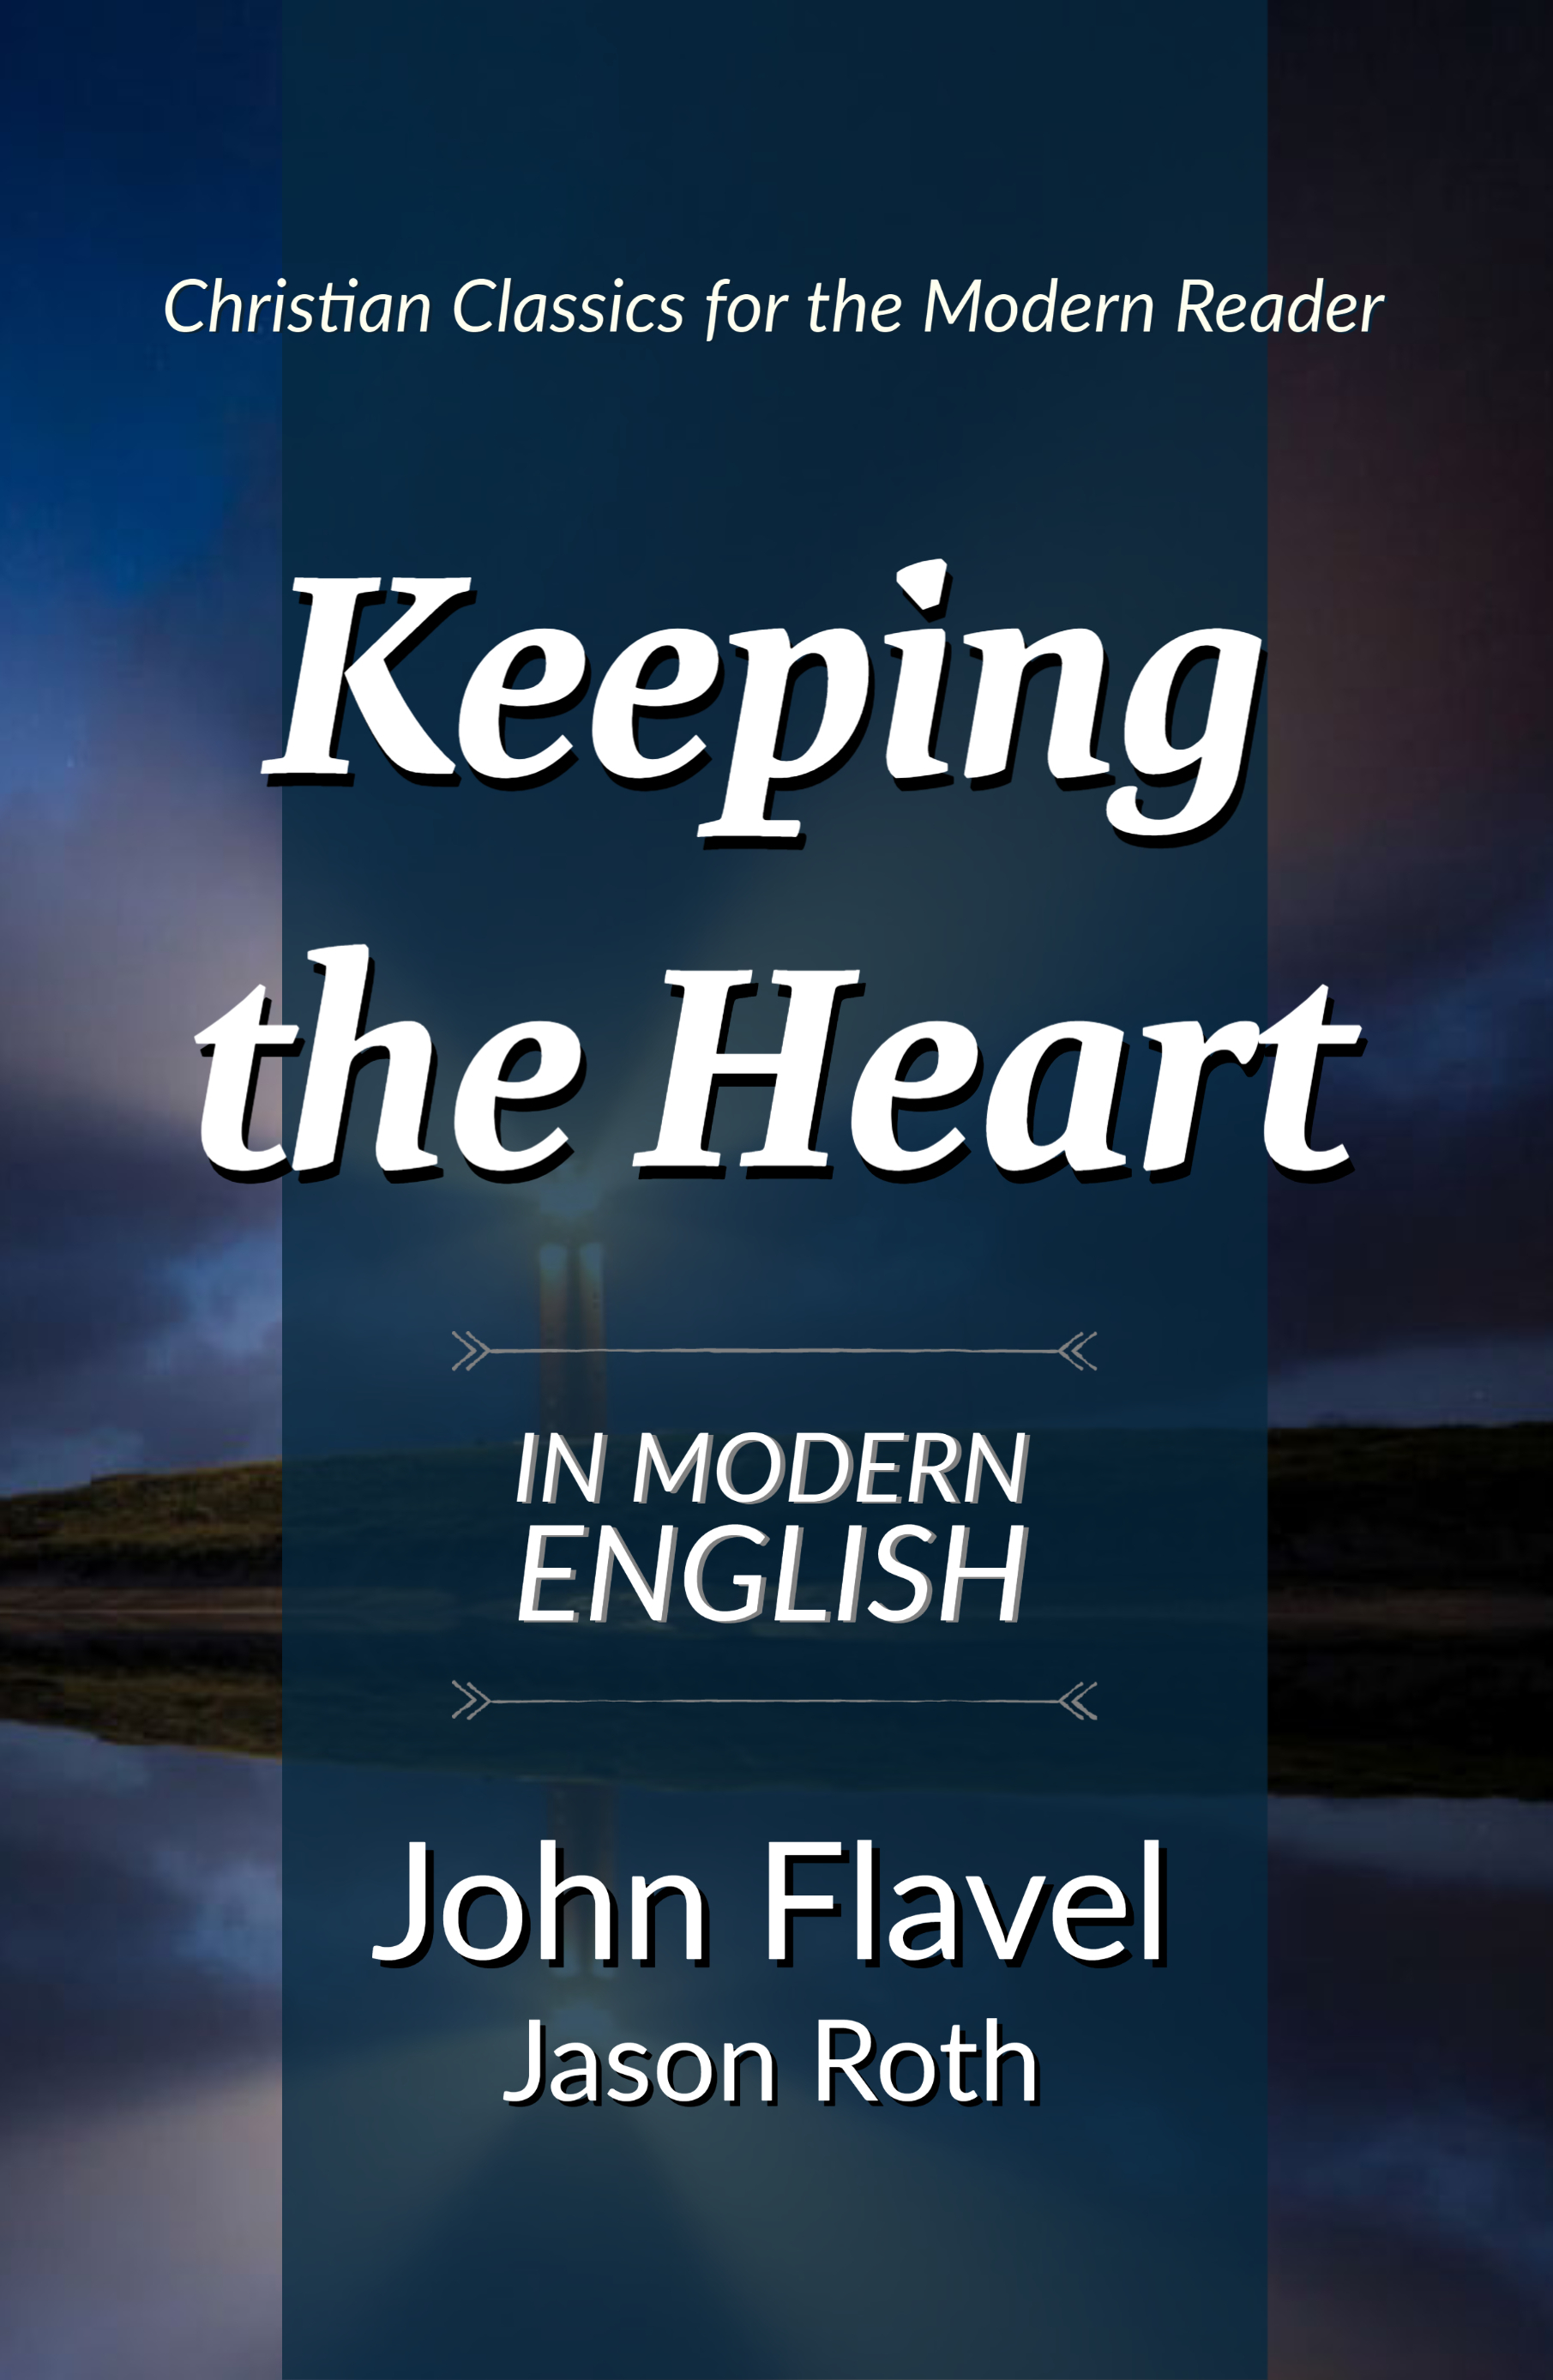 Keeping the Heart: In Modern English